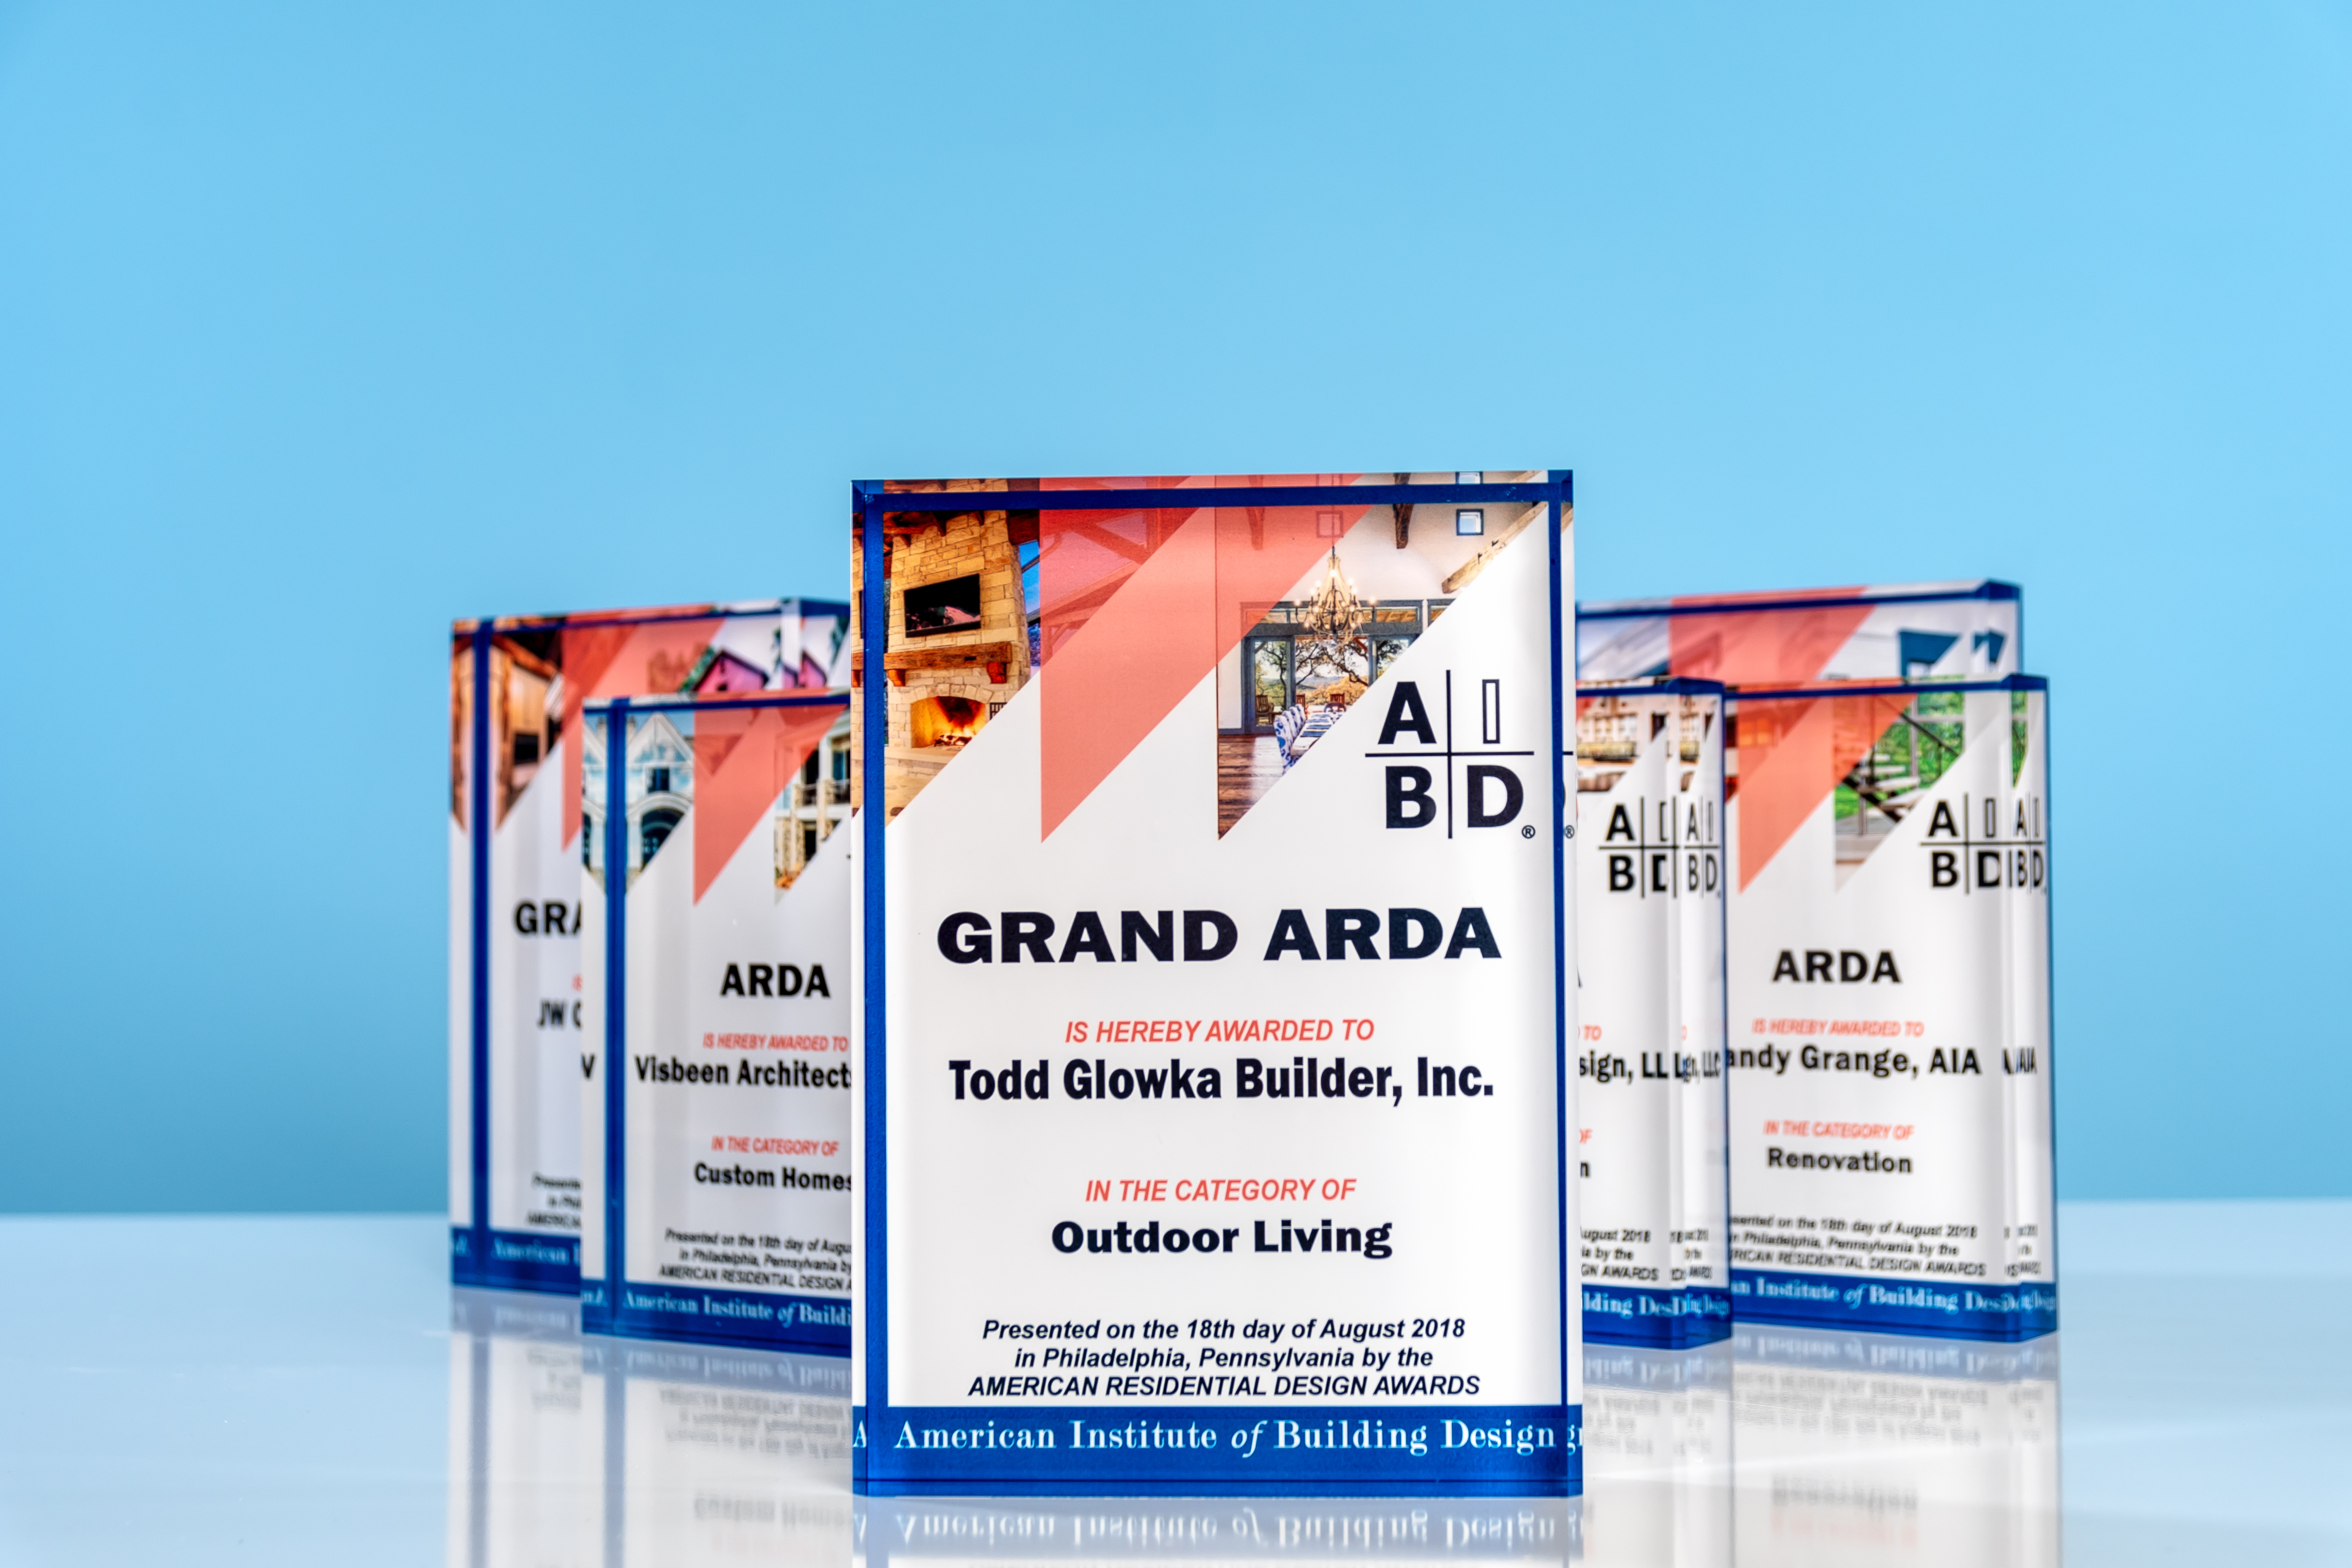 ARDA Call for Entries! Now open! Submit today! - AIBD MondayMINUTE